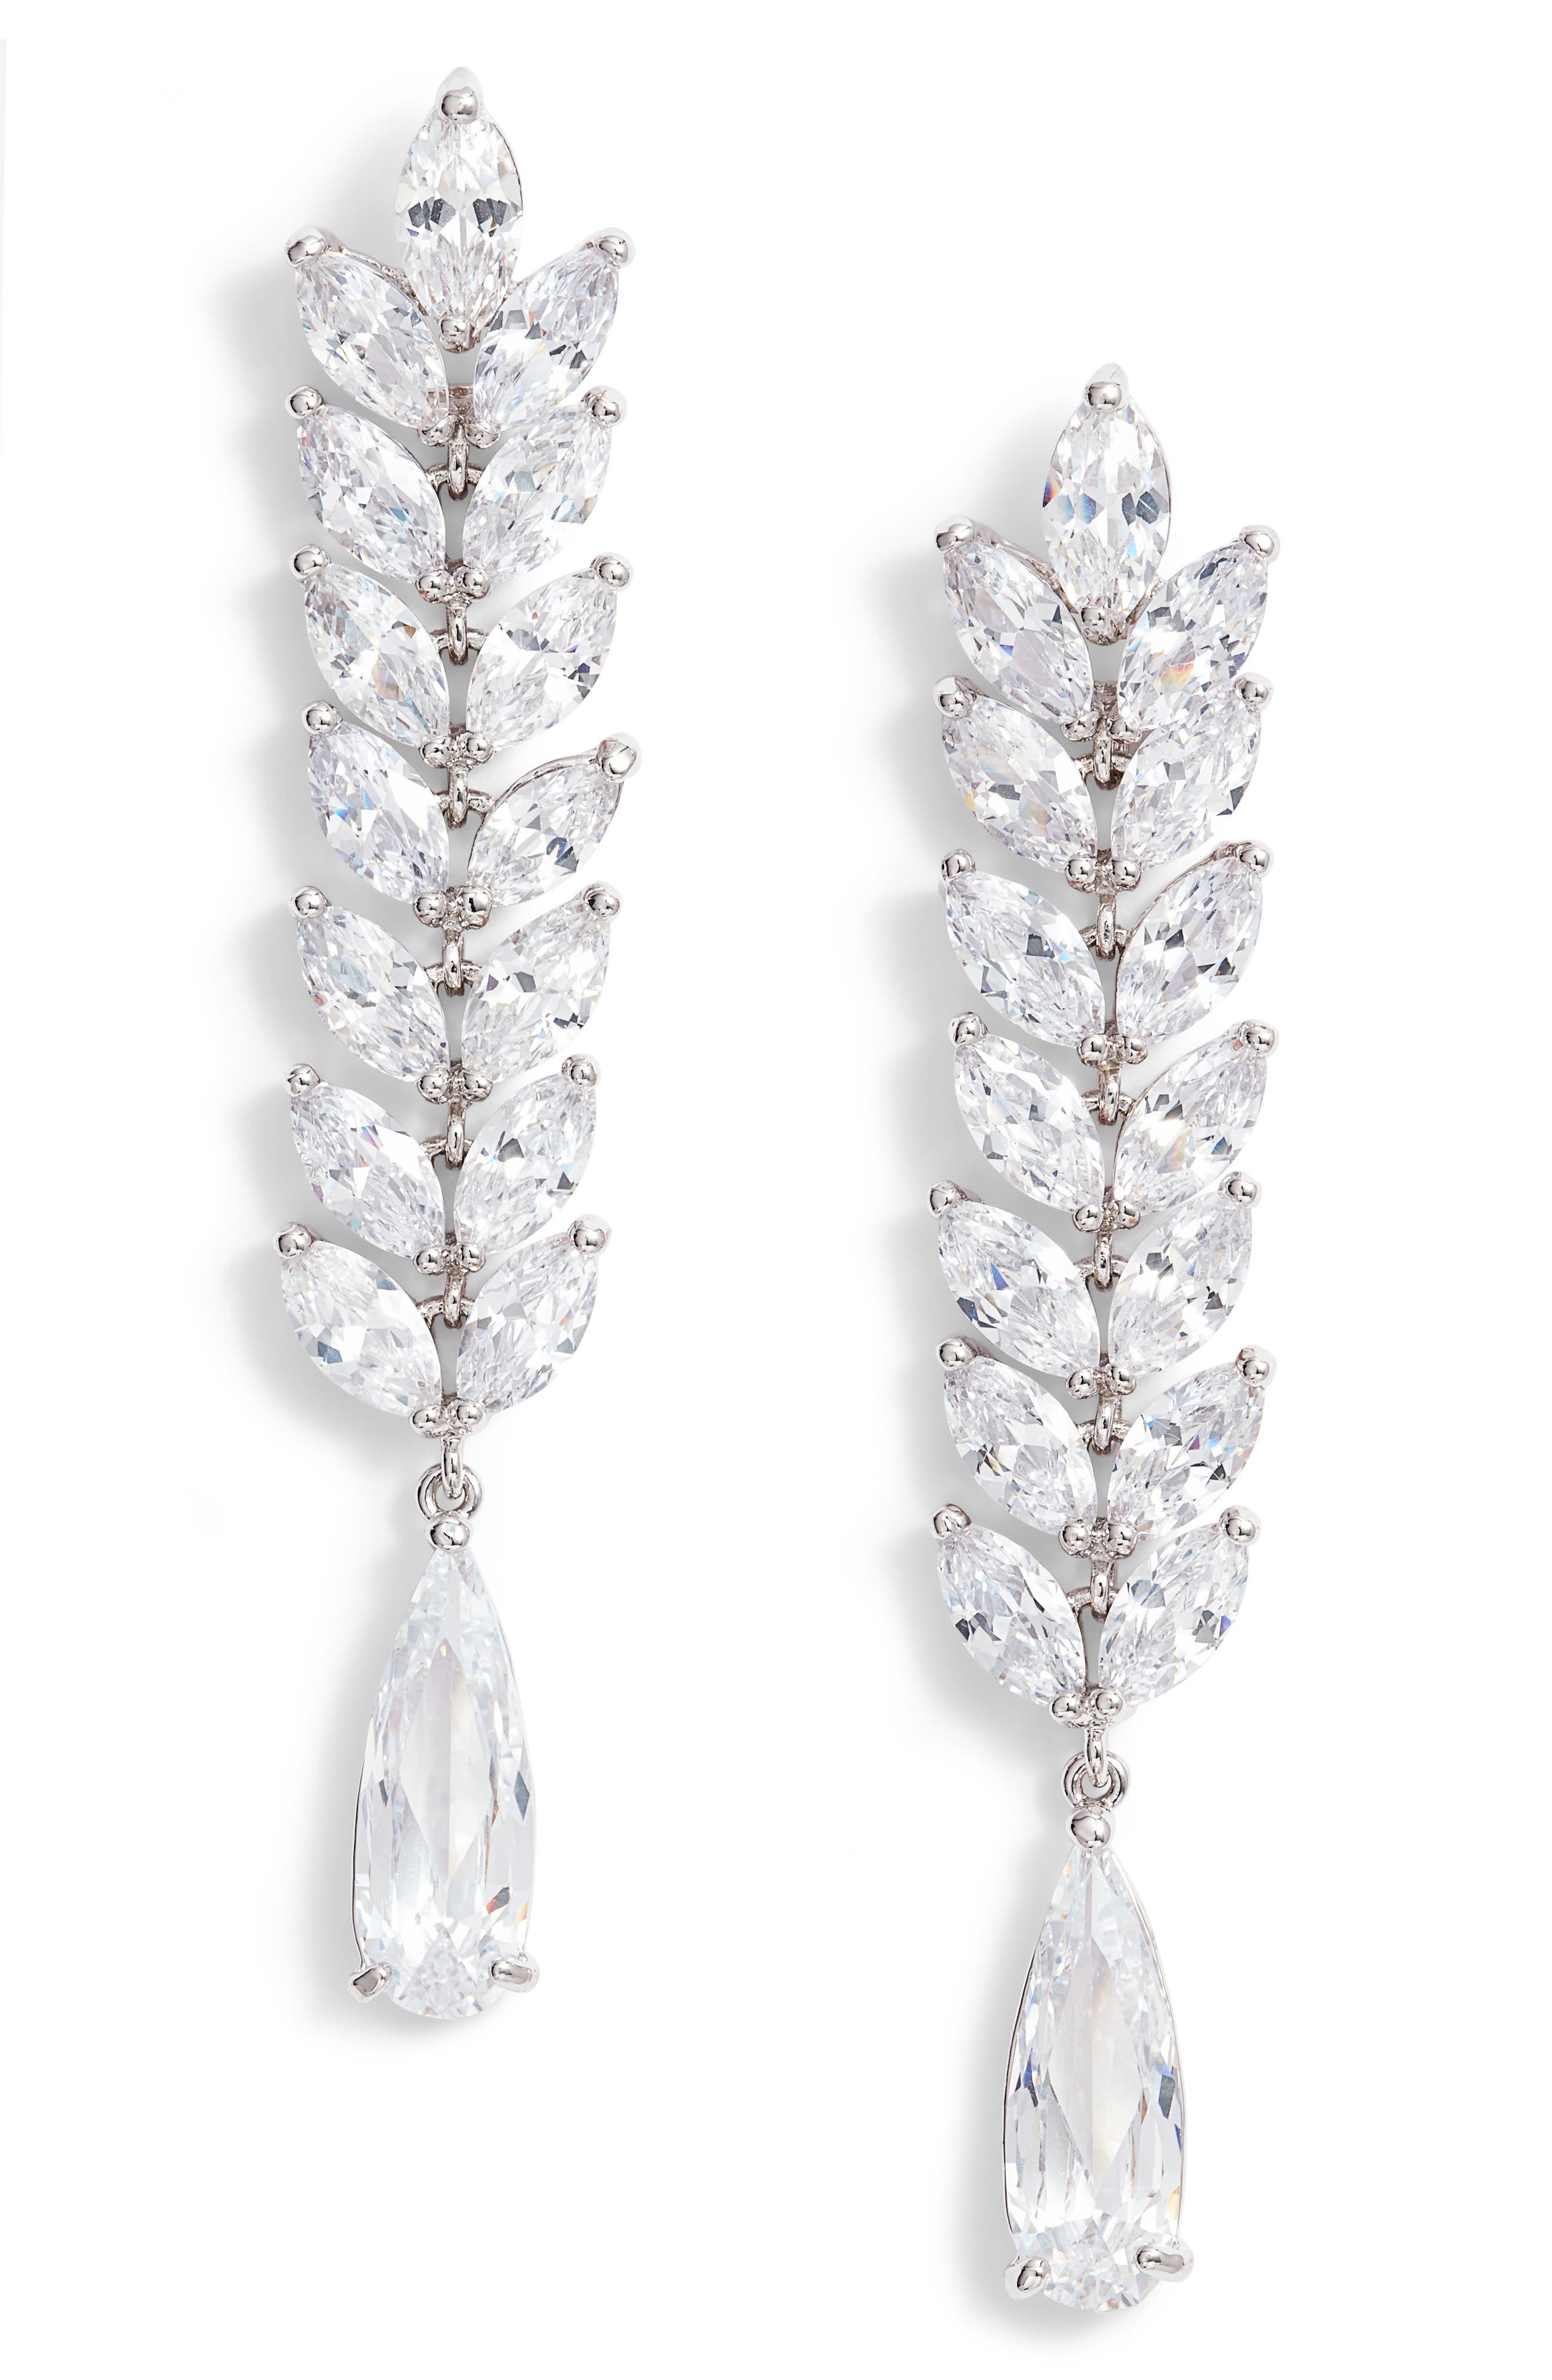 Cascading Long Drop Earrings,                             Main thumbnail 1, color,                             SILVER/ WHITE CZ